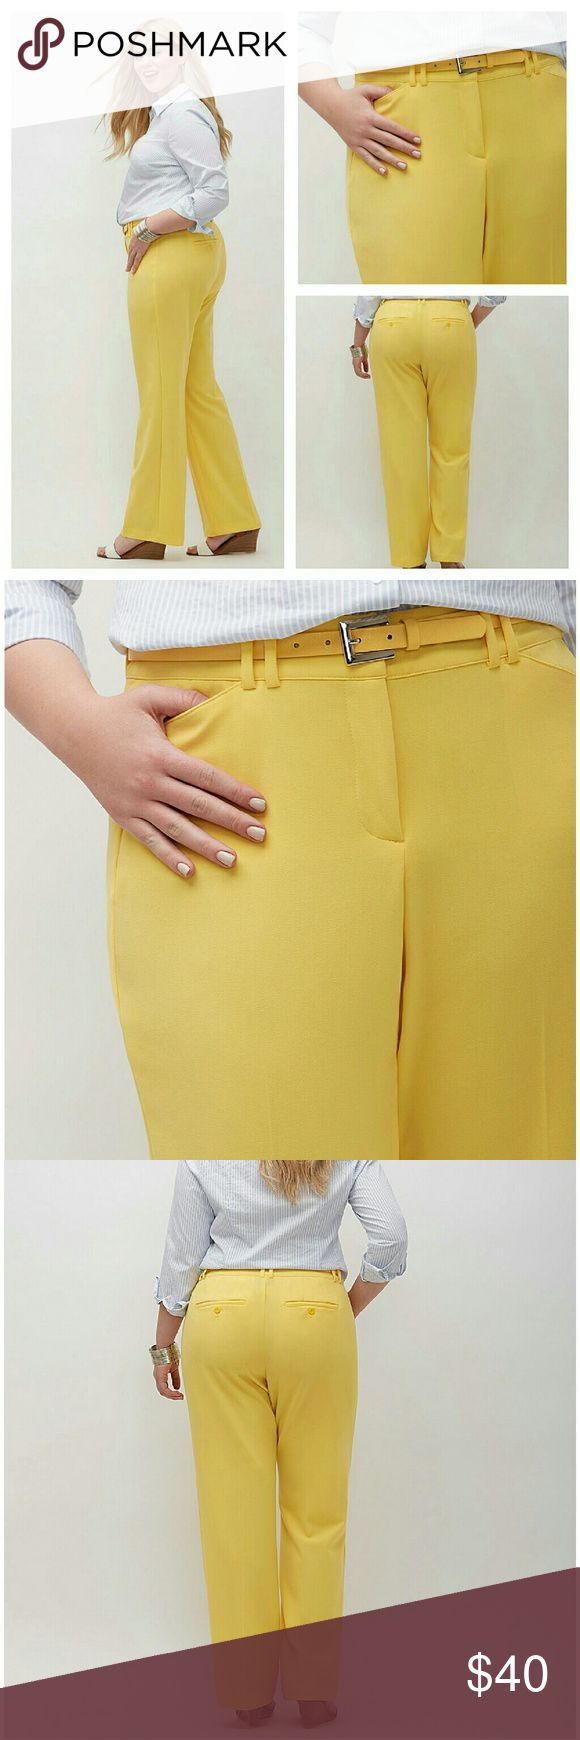 Lena trouser tummy technology 24 24p petite yellow **Plus size 24 petite**   POLYESTER / RAYON / SPANDEX MACHINE WASH IMPORTED  Our curve-loving Lena fit gets a slimmer, trimmer silhouette with Tighter Tummy Technology. Look and feel your best with T3's specially-designed tummy control panel and hidden elastic waistband for a no-gap fit. Tailored Stretch construction is the perfect pick for office to weekend, with its smooth feel and flattering drape. Bar & slide and zip fly closure. Four…